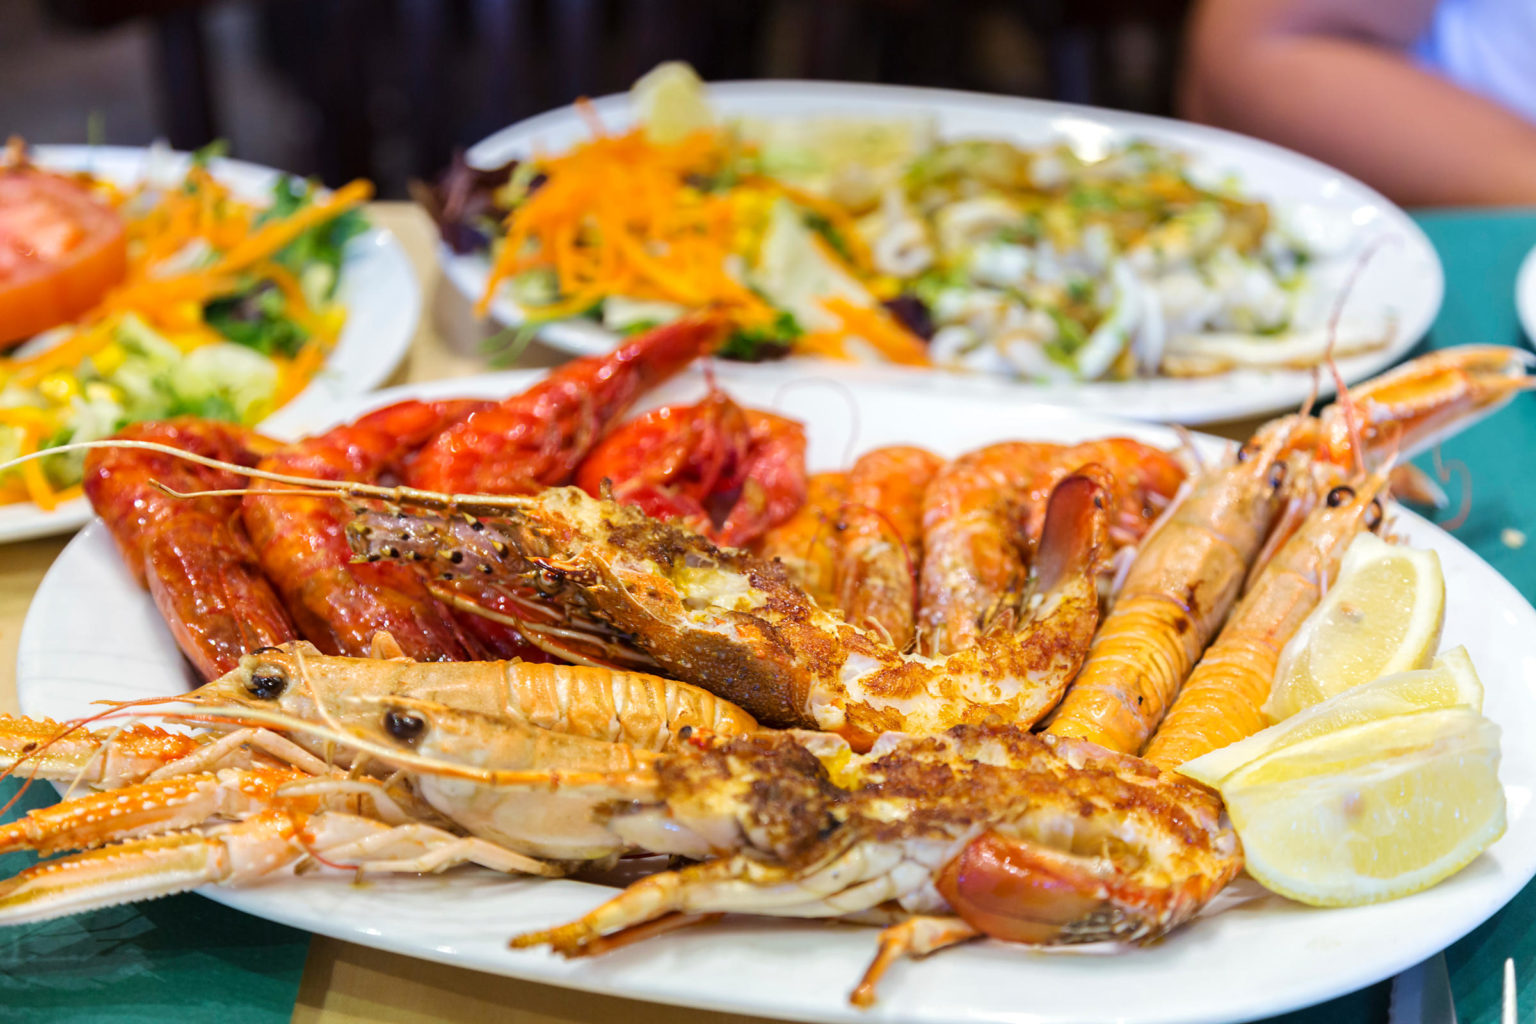 Spain, Madrid. Mixed grilled seafood